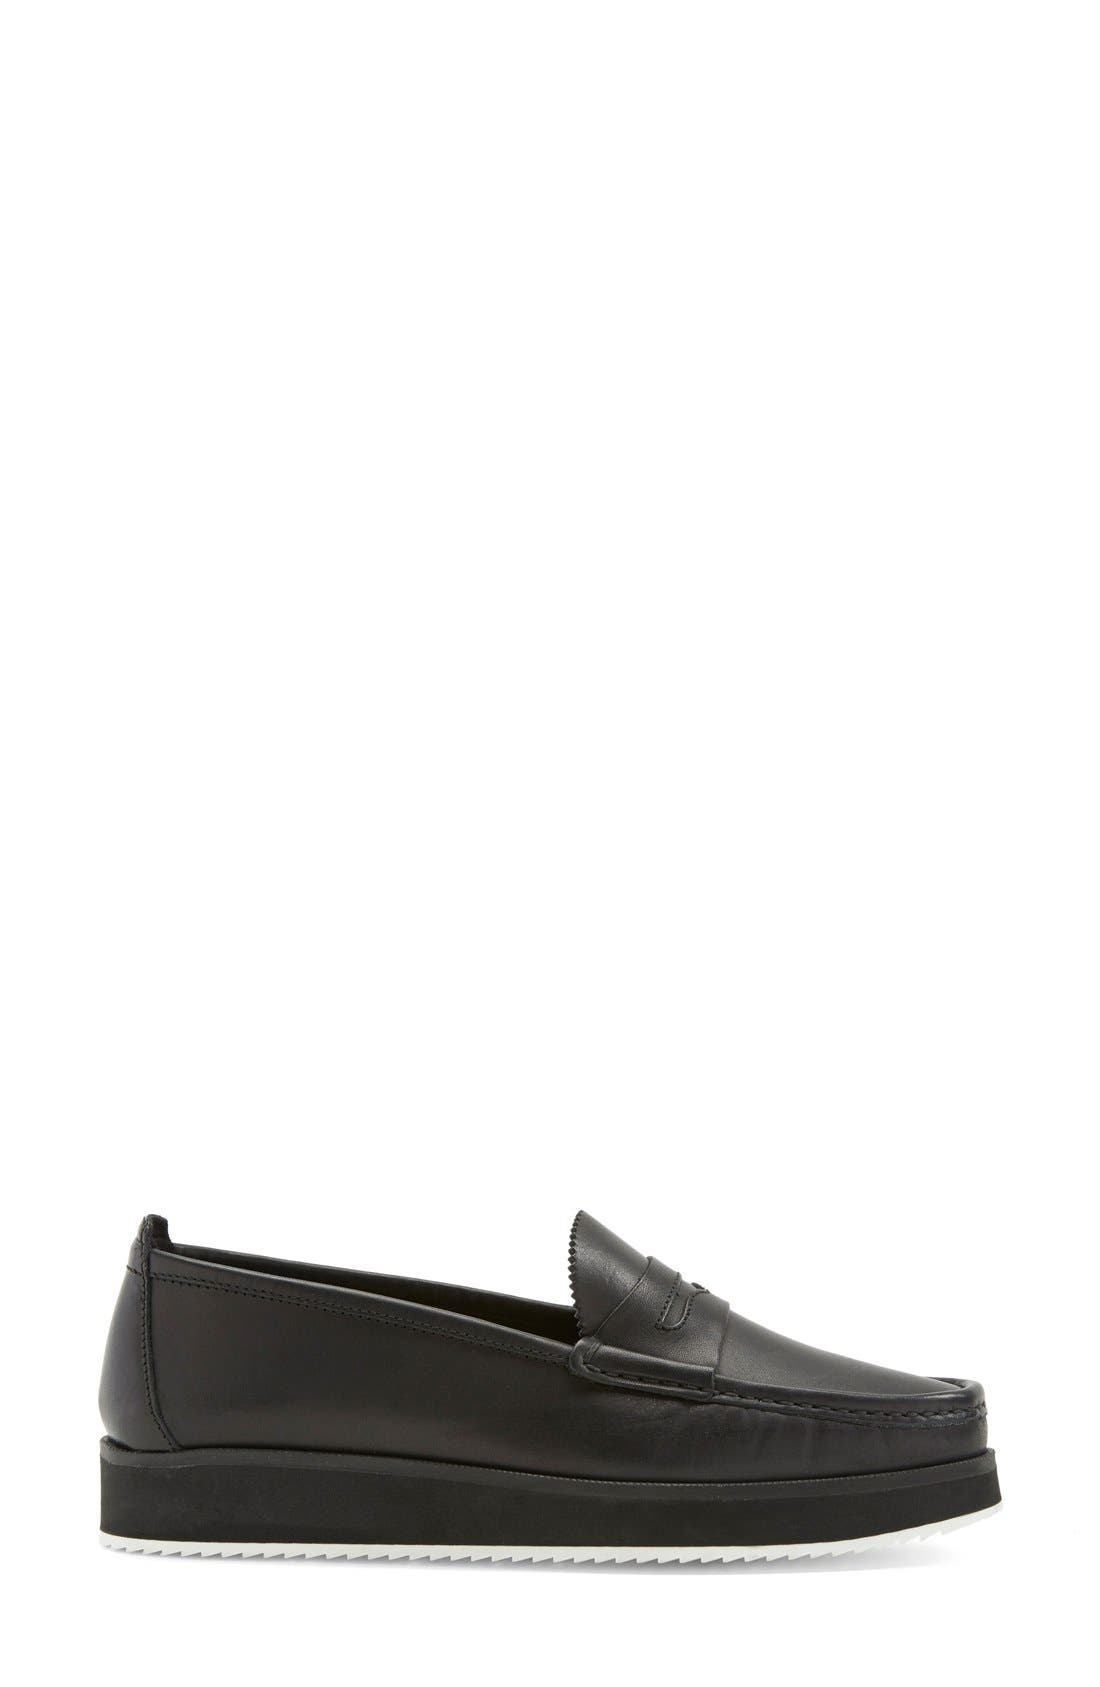 'Tanya' Penny Loafer,                             Alternate thumbnail 4, color,                             Black Leather